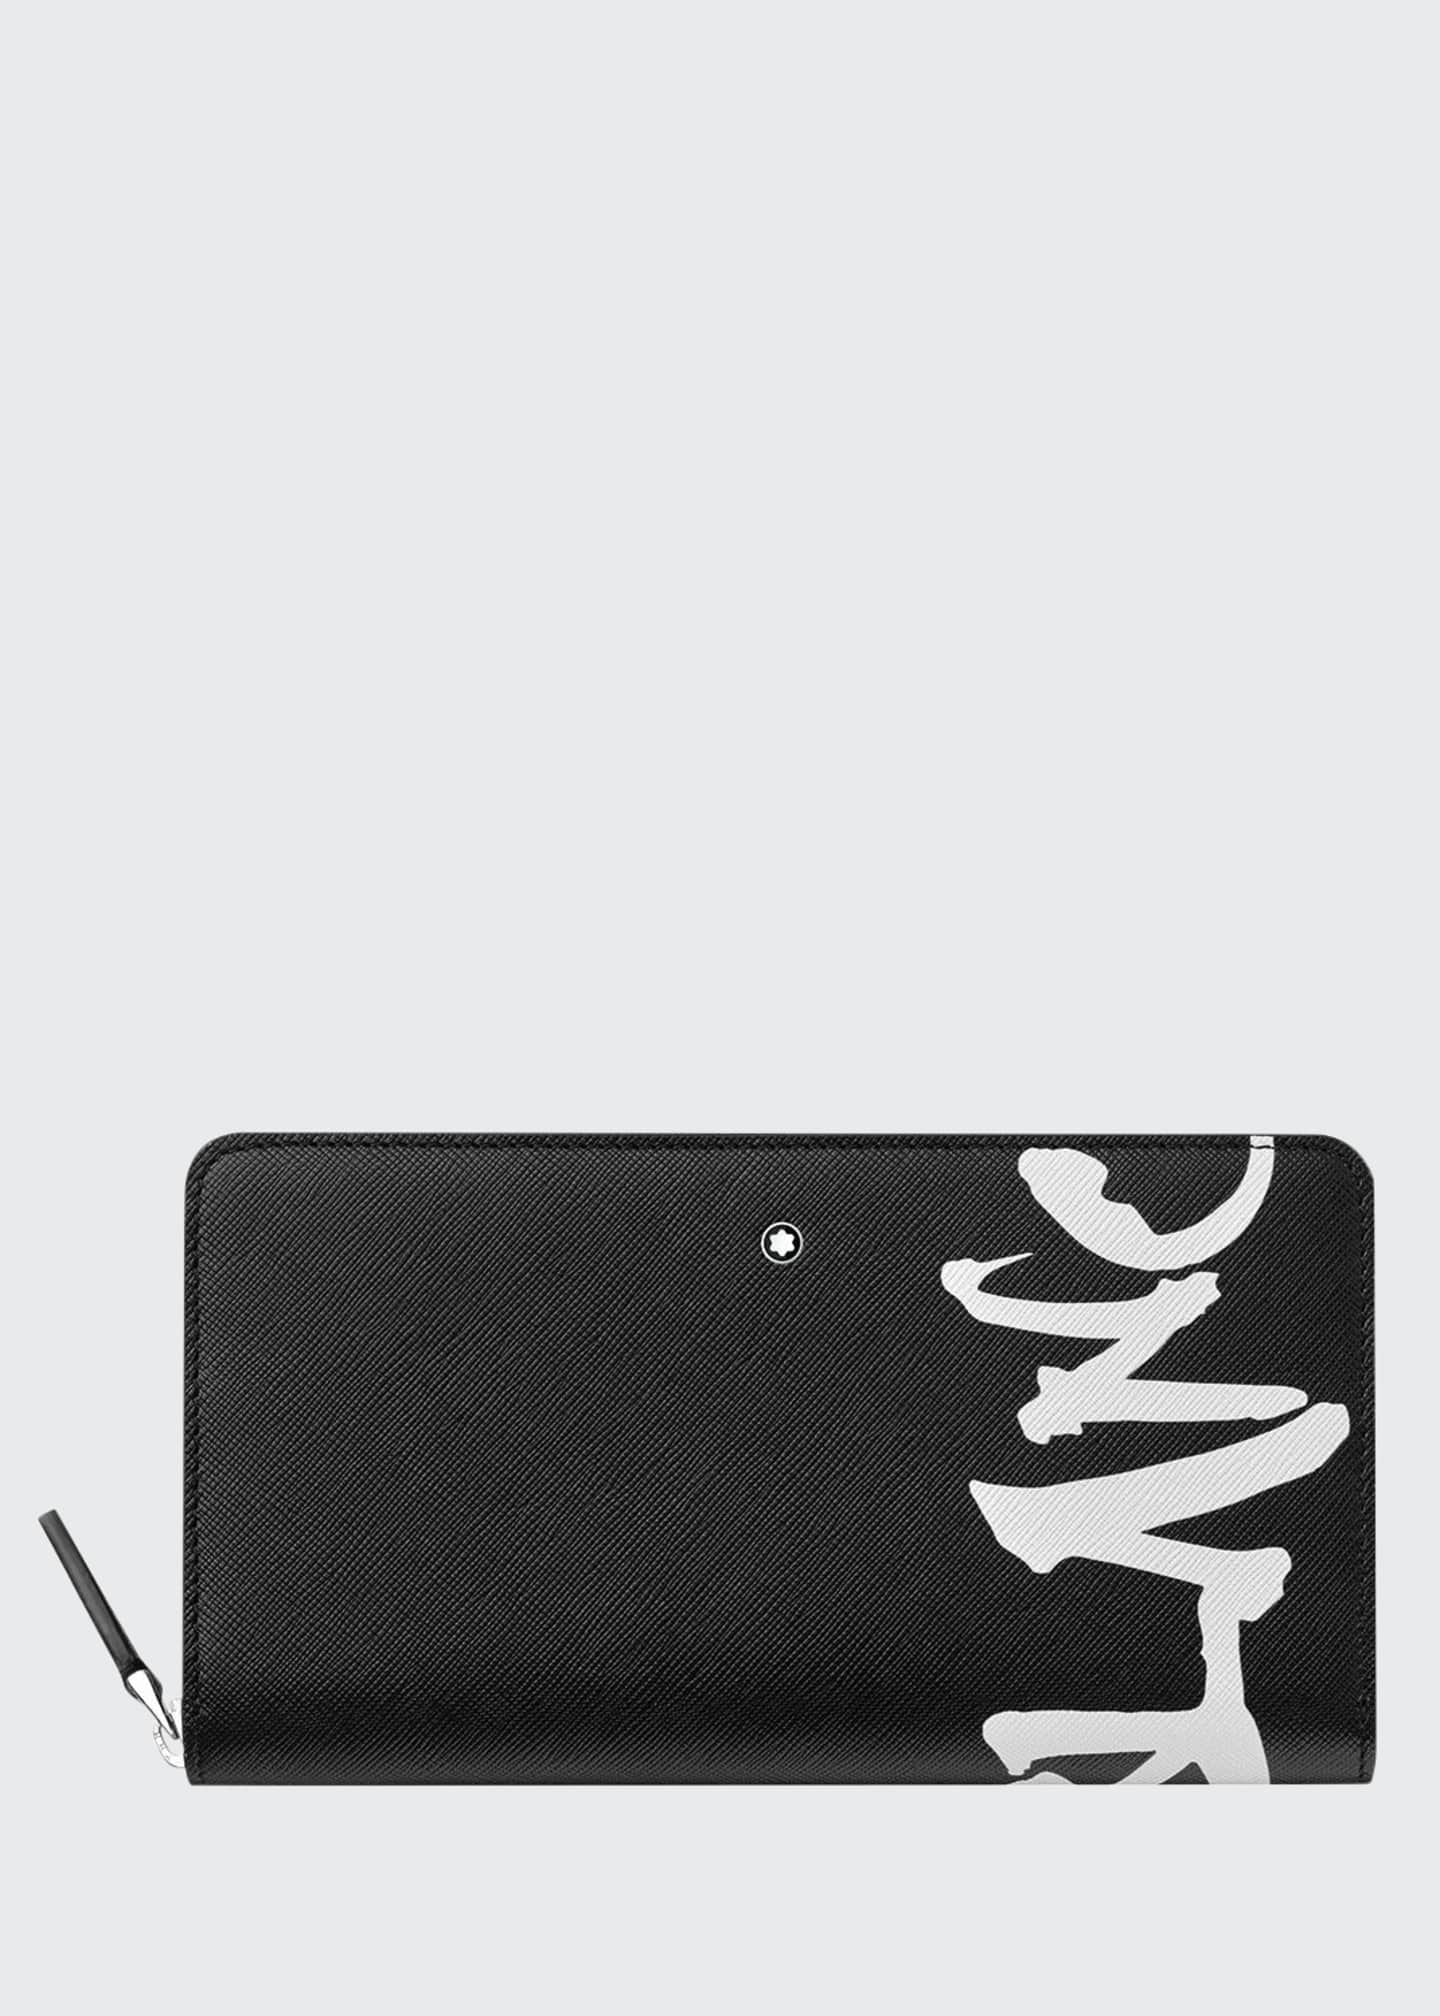 Image 1 of 1: Men's Saffiano Leather Graffiti Logo Wallet